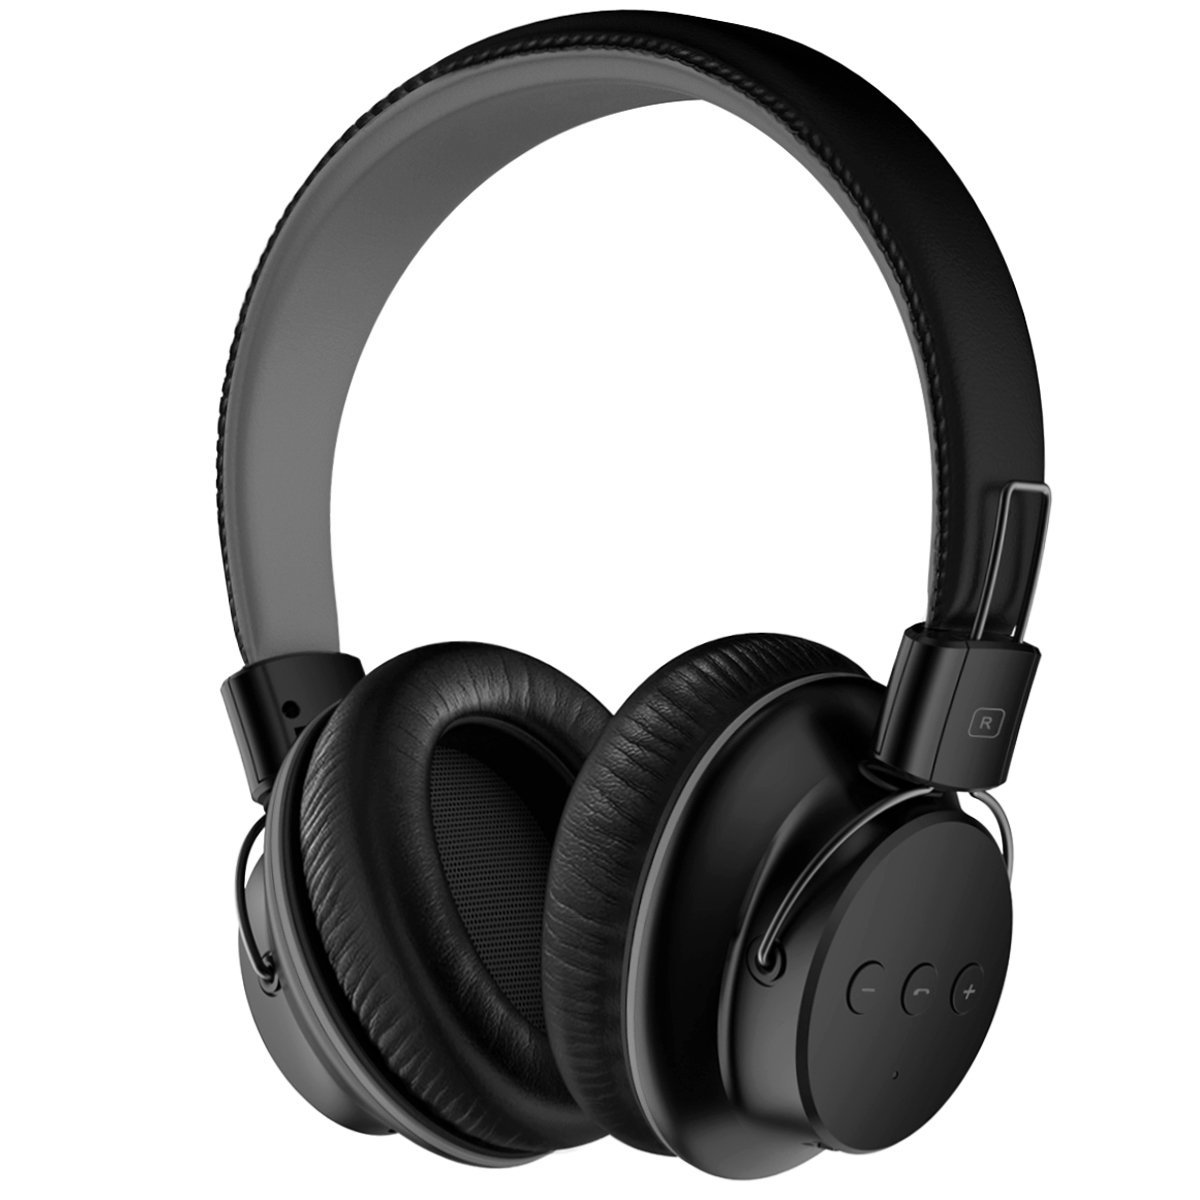 Mpow H1 Bluetooth Headphones Over Ear Lightweight, Comfortable for Prolonged Wearing, Hi-Fi Stereo Wireless Headphones, Foldable Headset w/Built-in Mic and Wired Mode for PC/Cell Phones by Mpow